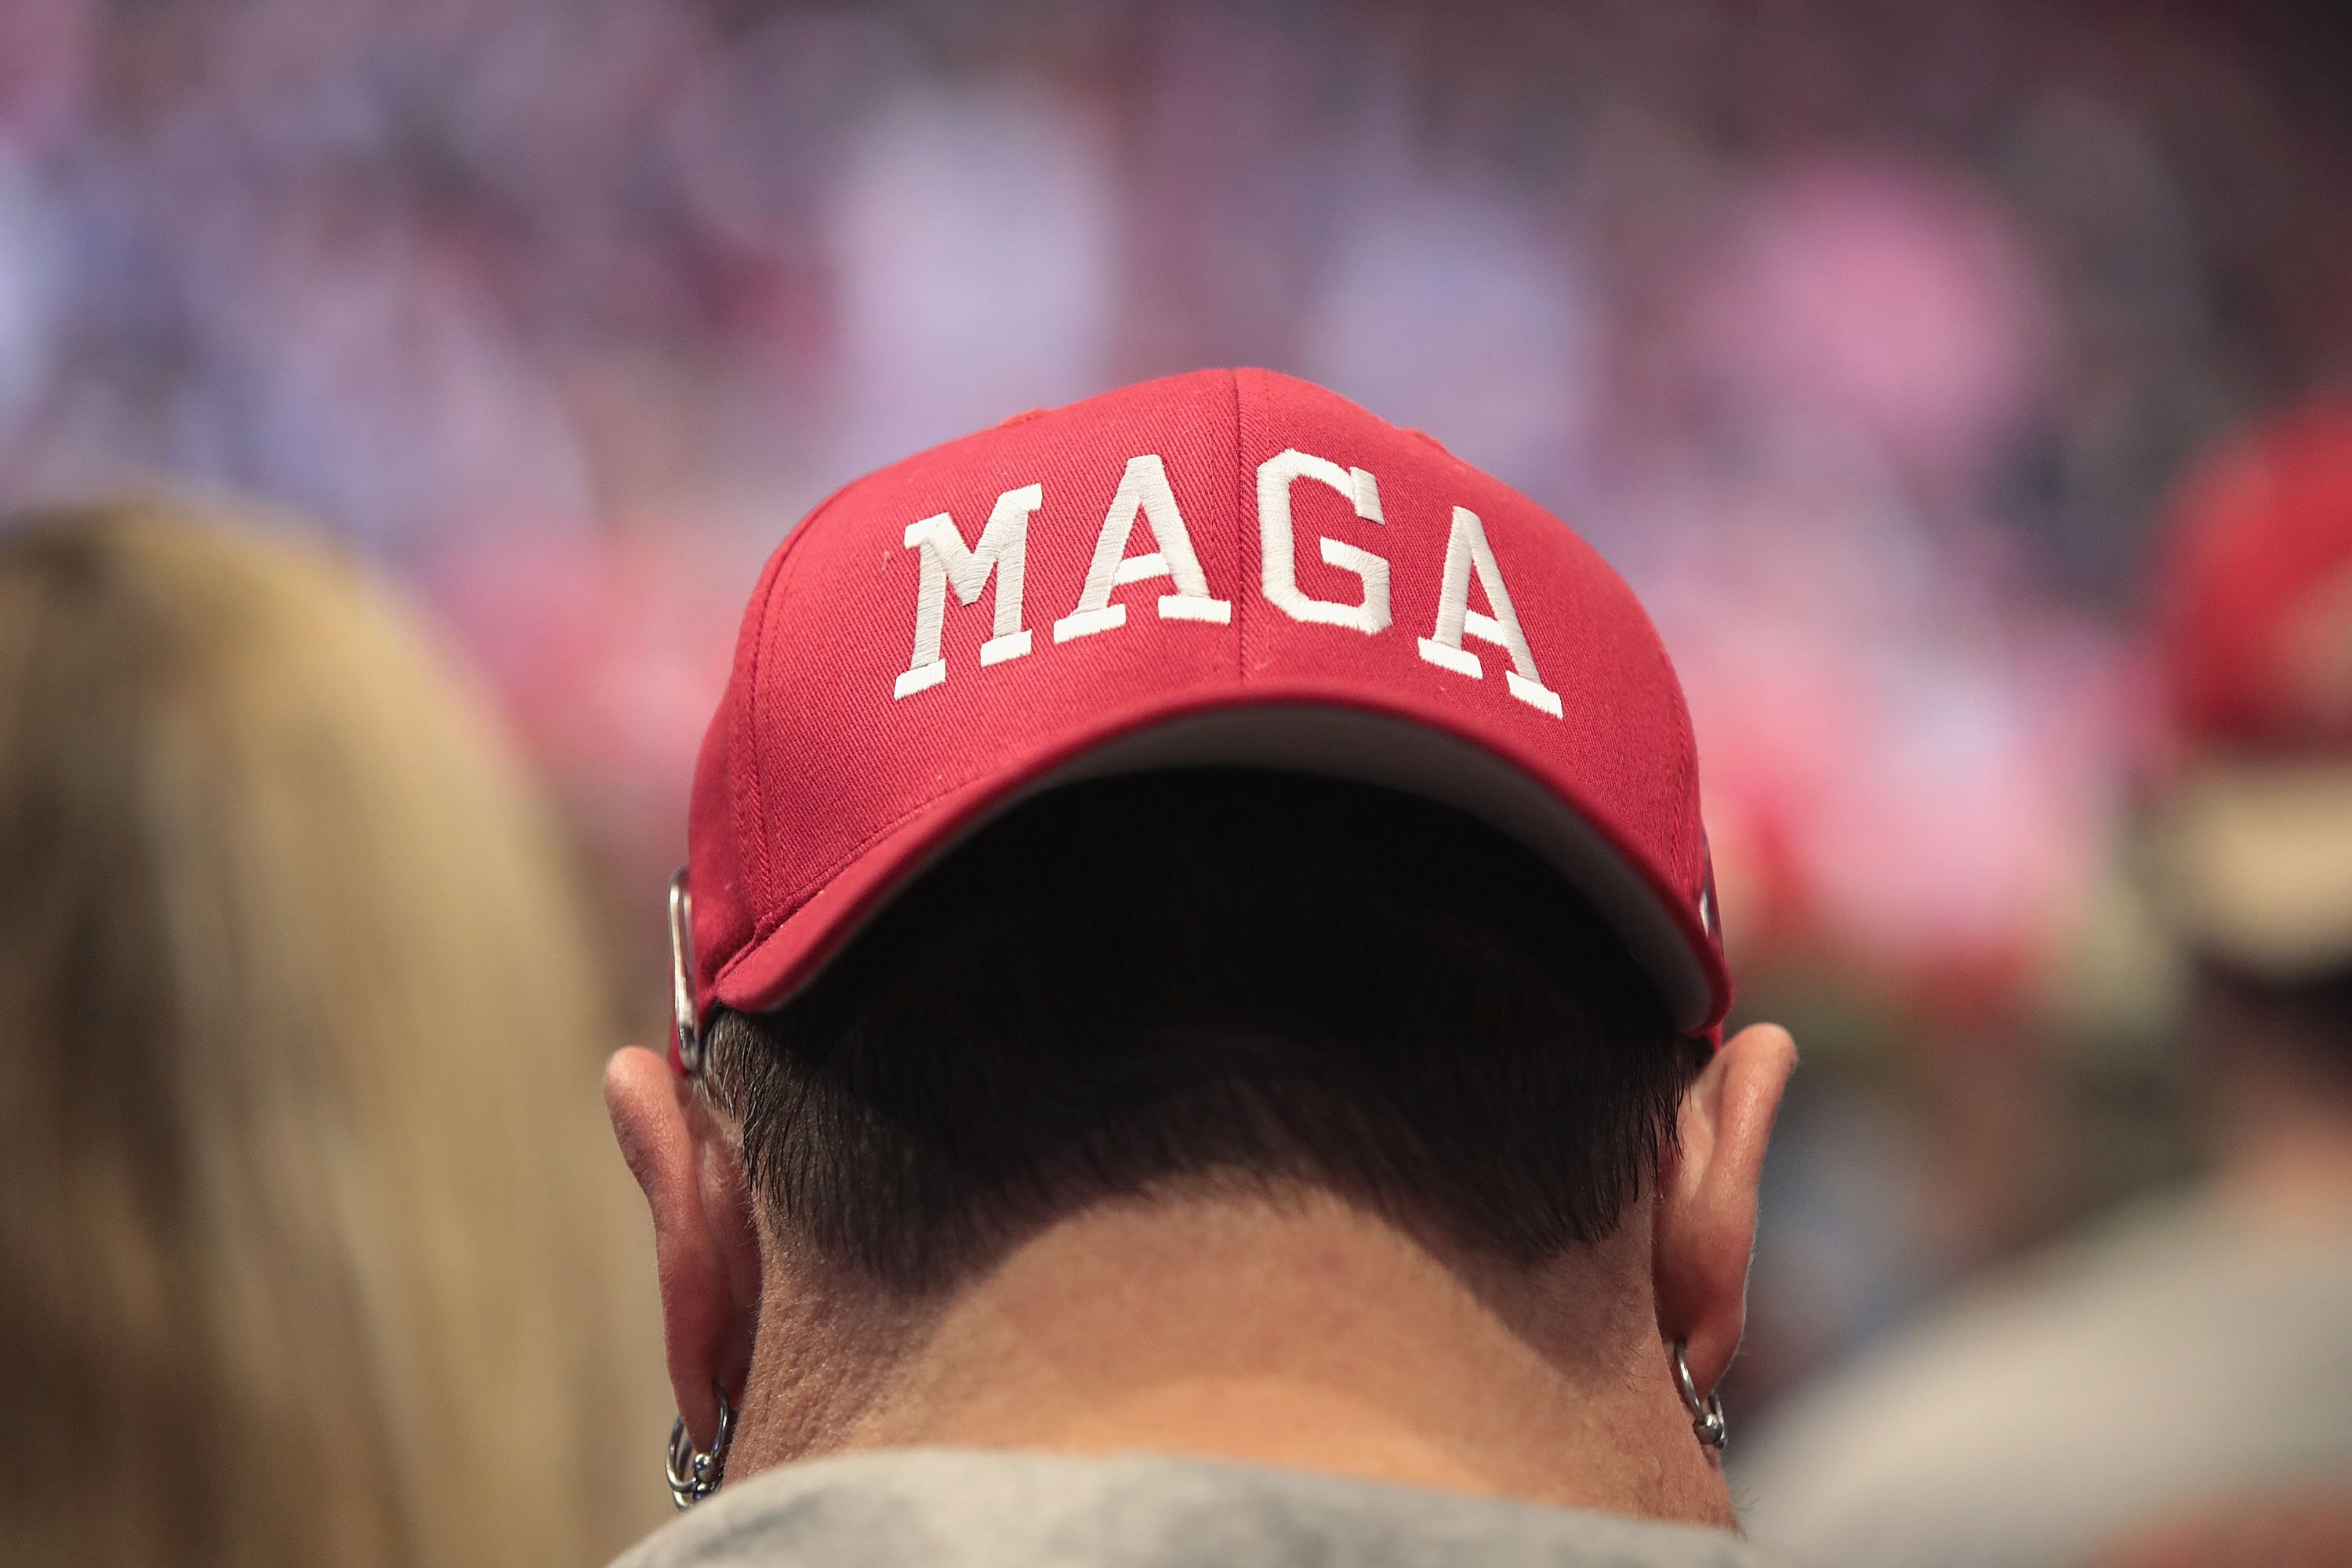 A Donald Trump supporter wearing a MAGA hat during a rally at the Van Andel Arena in Grand Rapids, Michigan | Photo: Getty Images